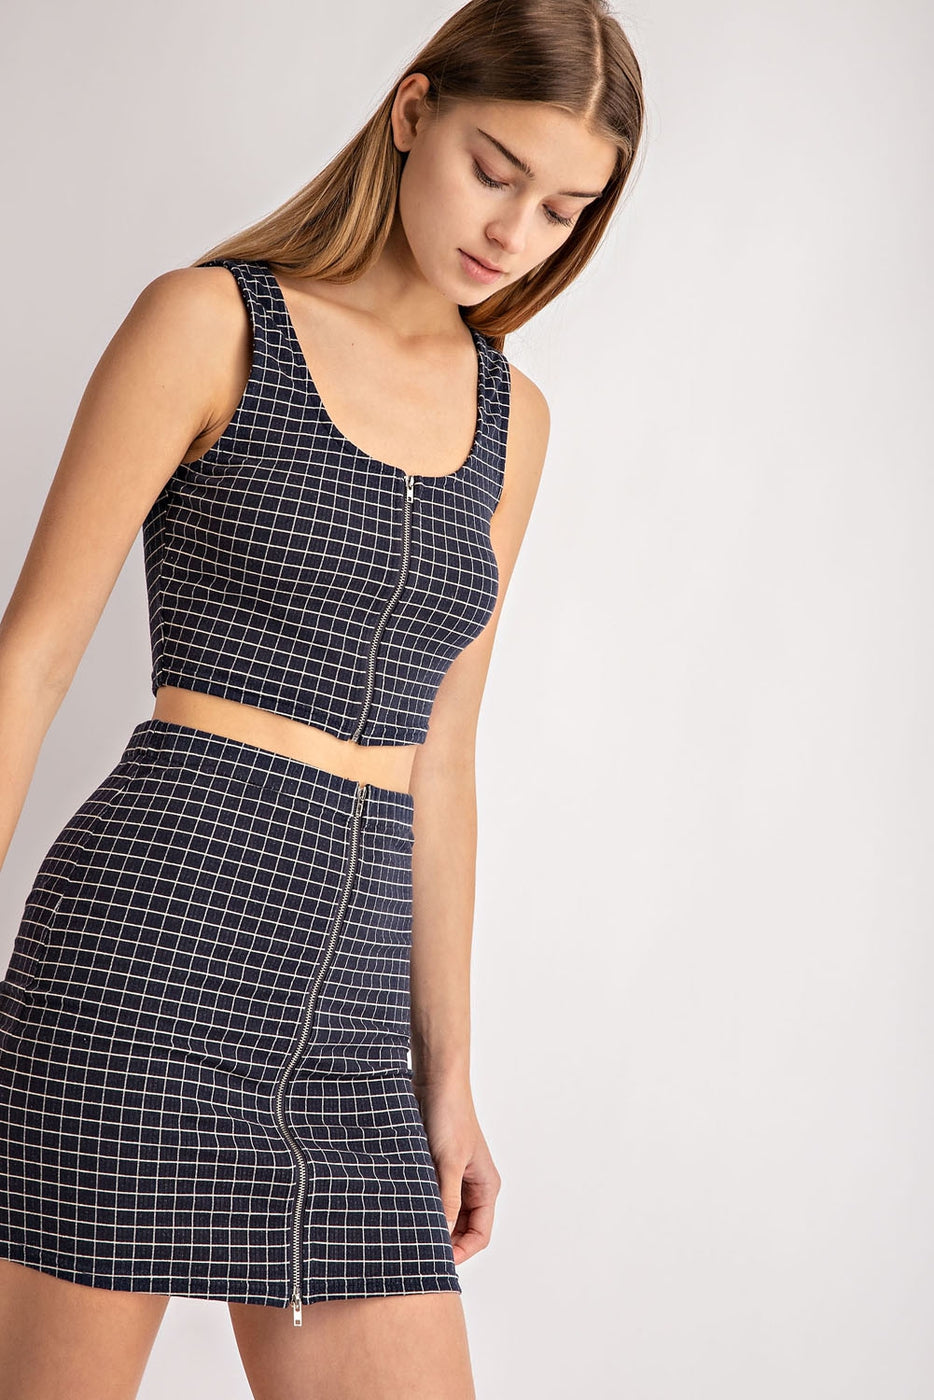 Zip Up Gingham Stretched Knit Top In Navy Siin Bees